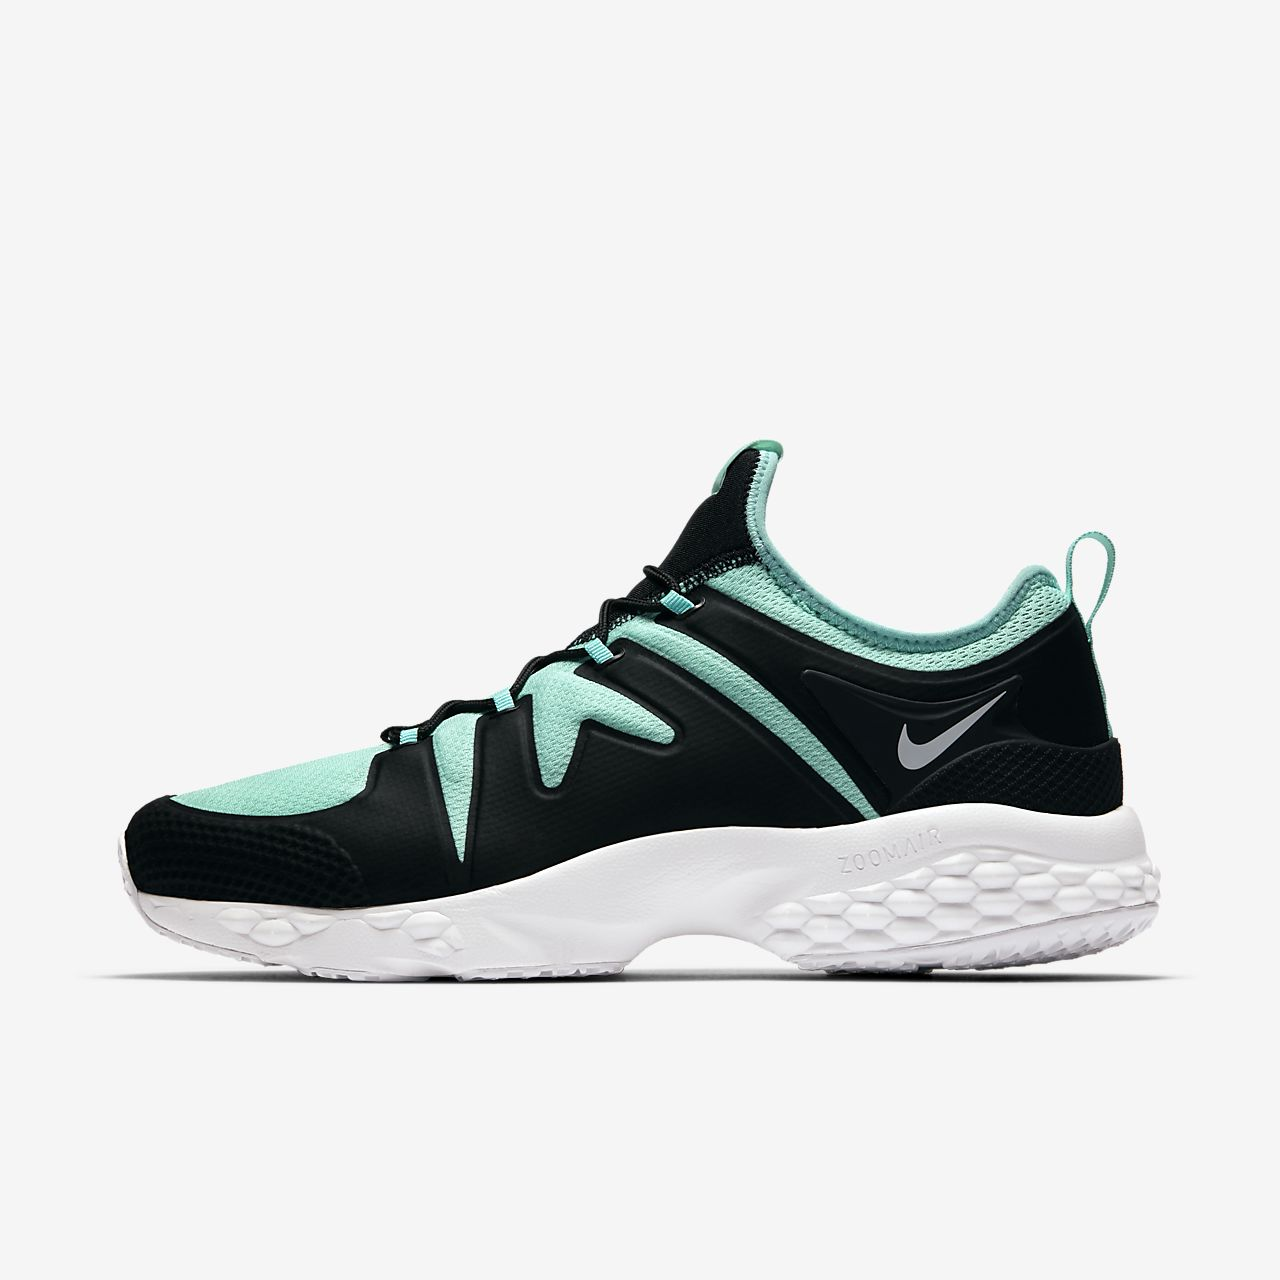 check out 62abb 5310a ... Buty męskie Nike Air Zoom LWP 16 SP